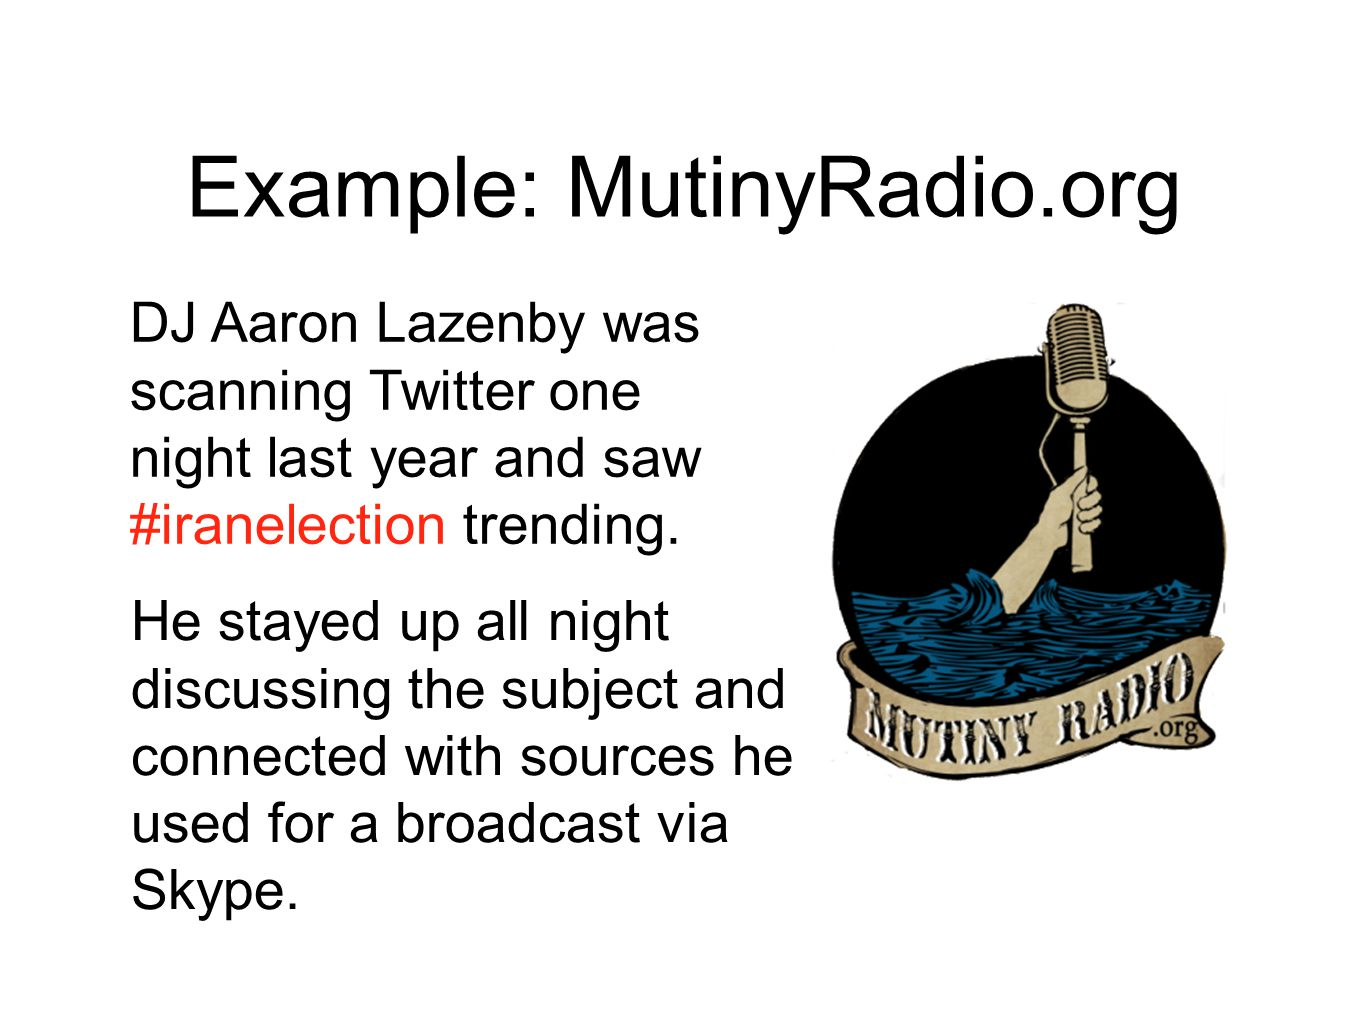 Example: MutinyRadio.org DJ Aaron Lazenby was scanning Twitter one night last year and saw #iranelection trending.